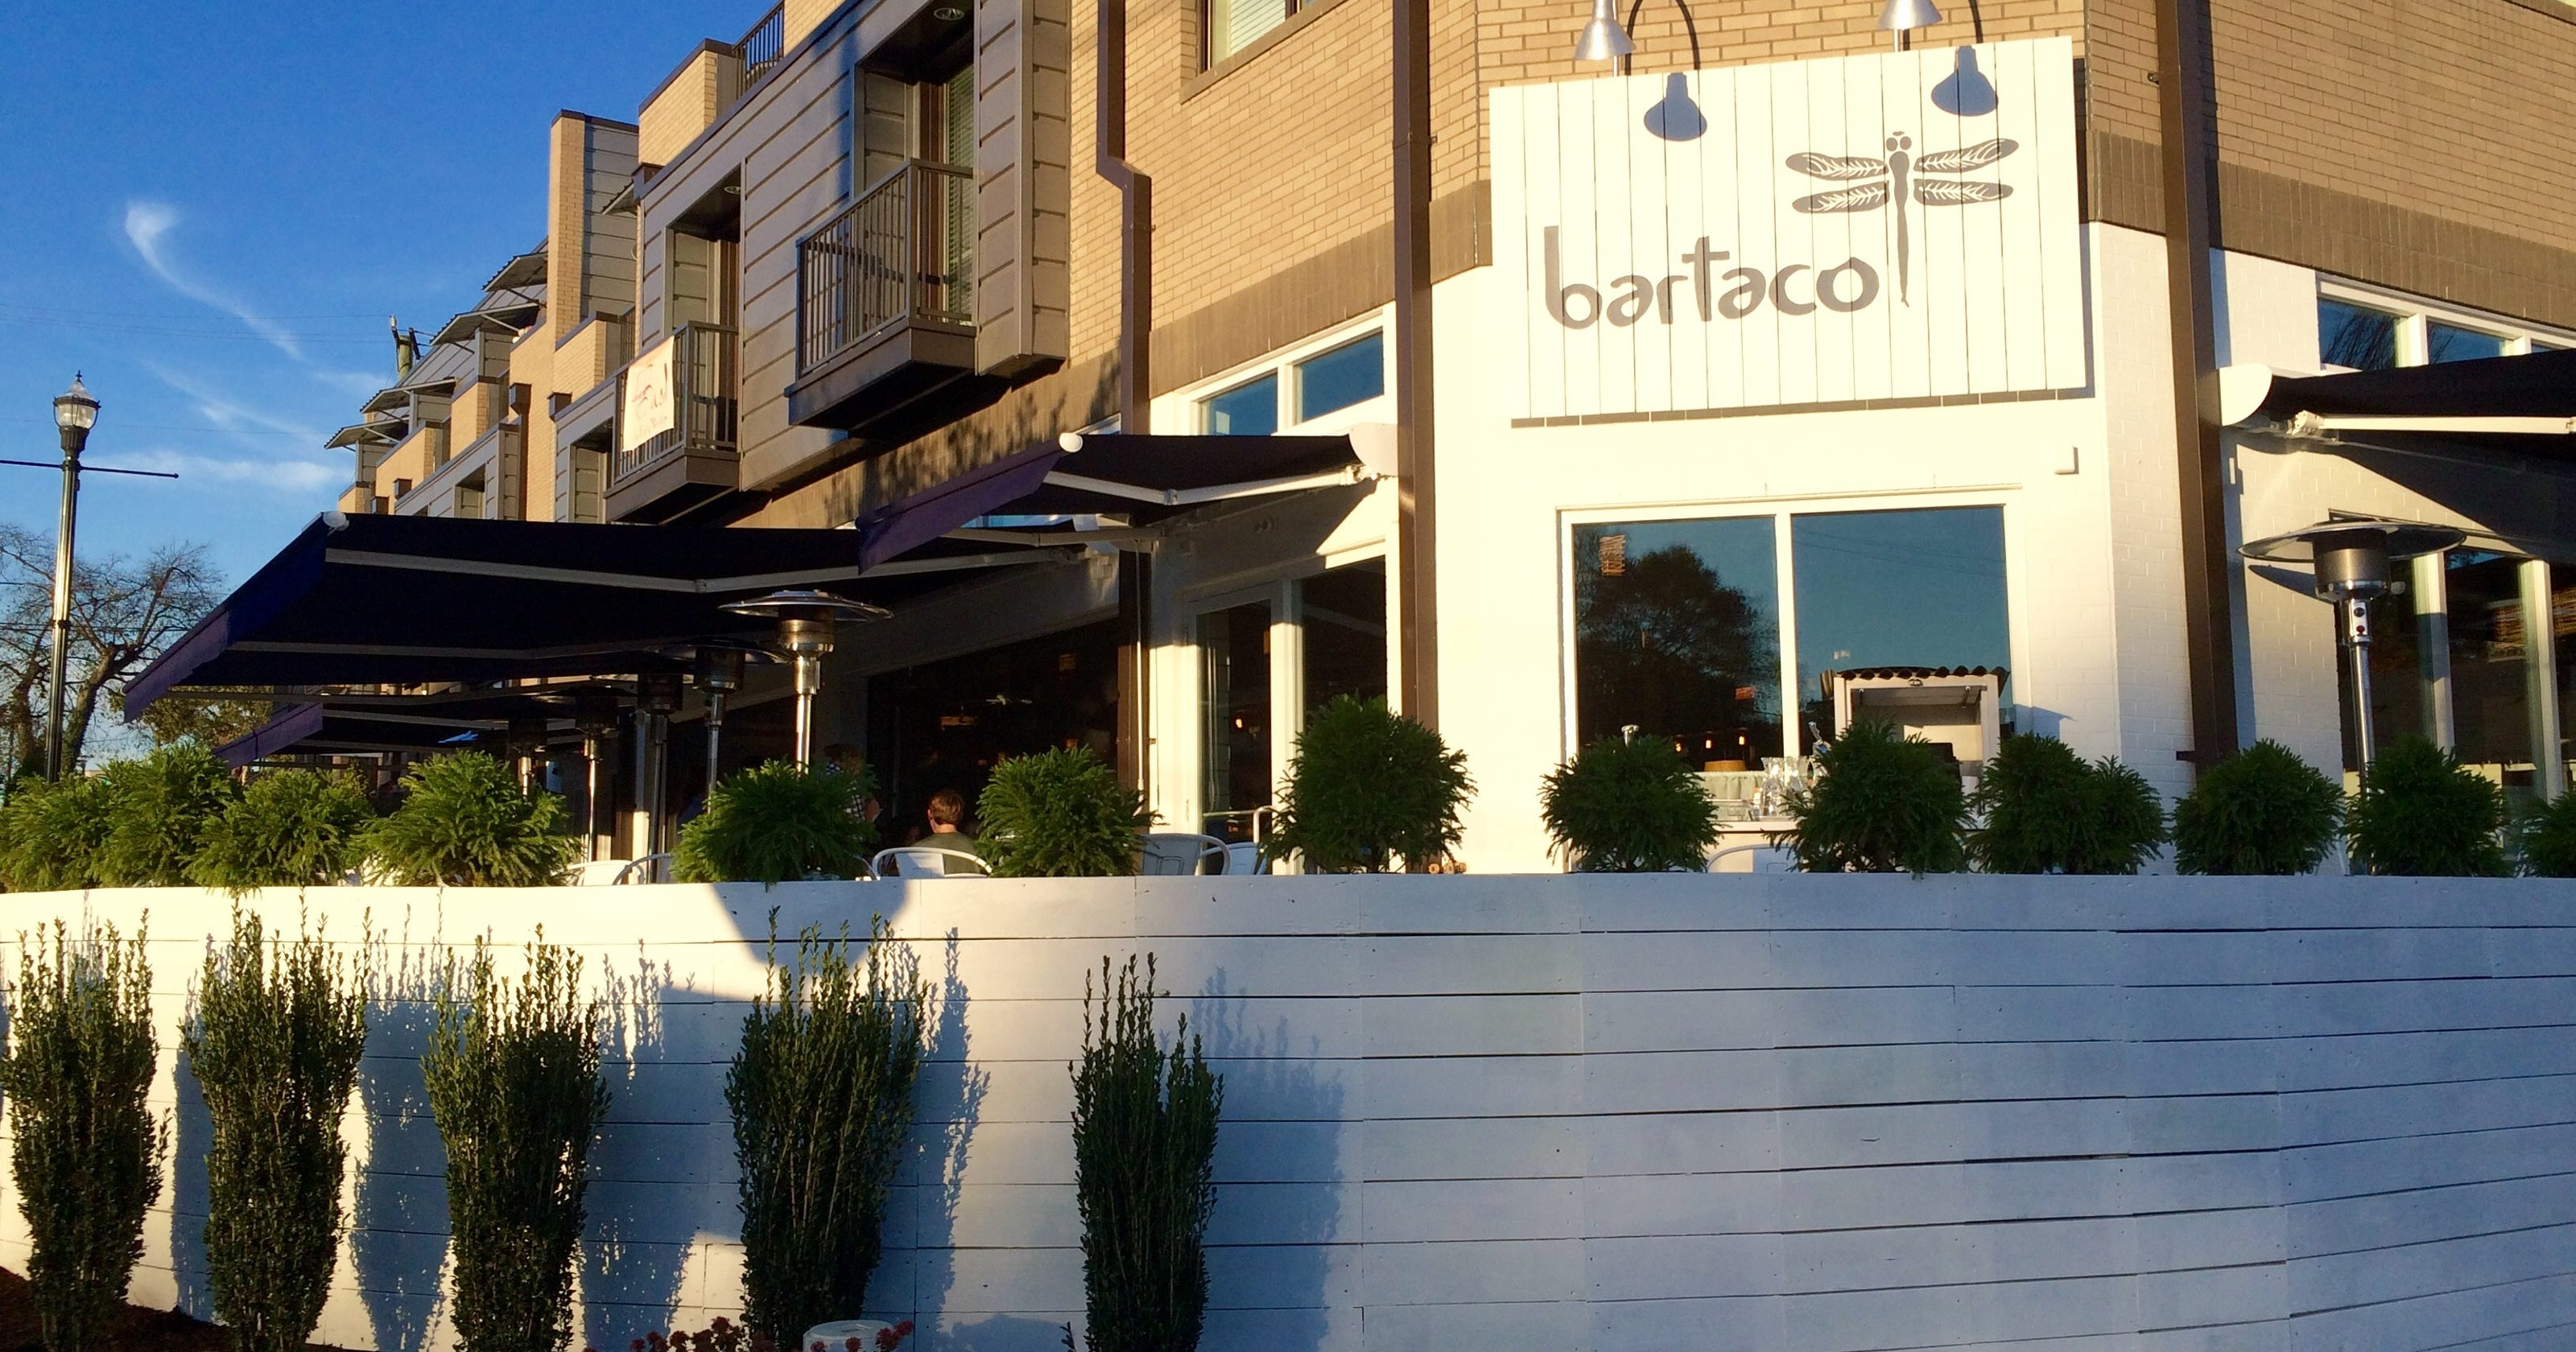 Bartaco restaurant opens in 12South